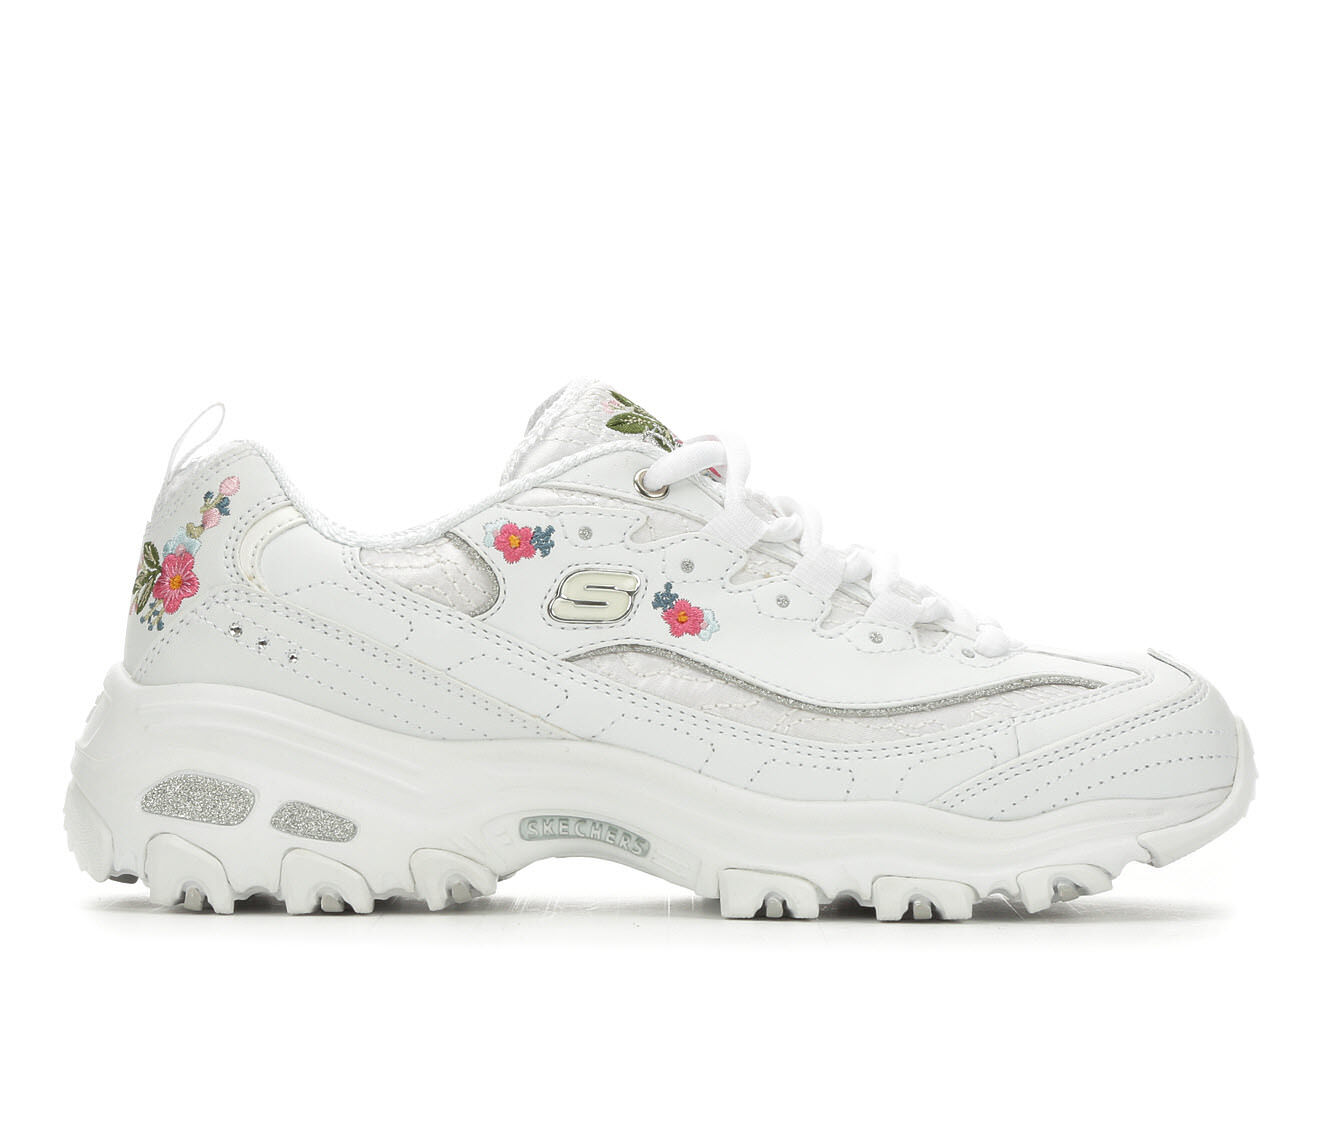 genuine shop Women's Skechers D'Lites Bright Blossoms 11977 Sneakers White